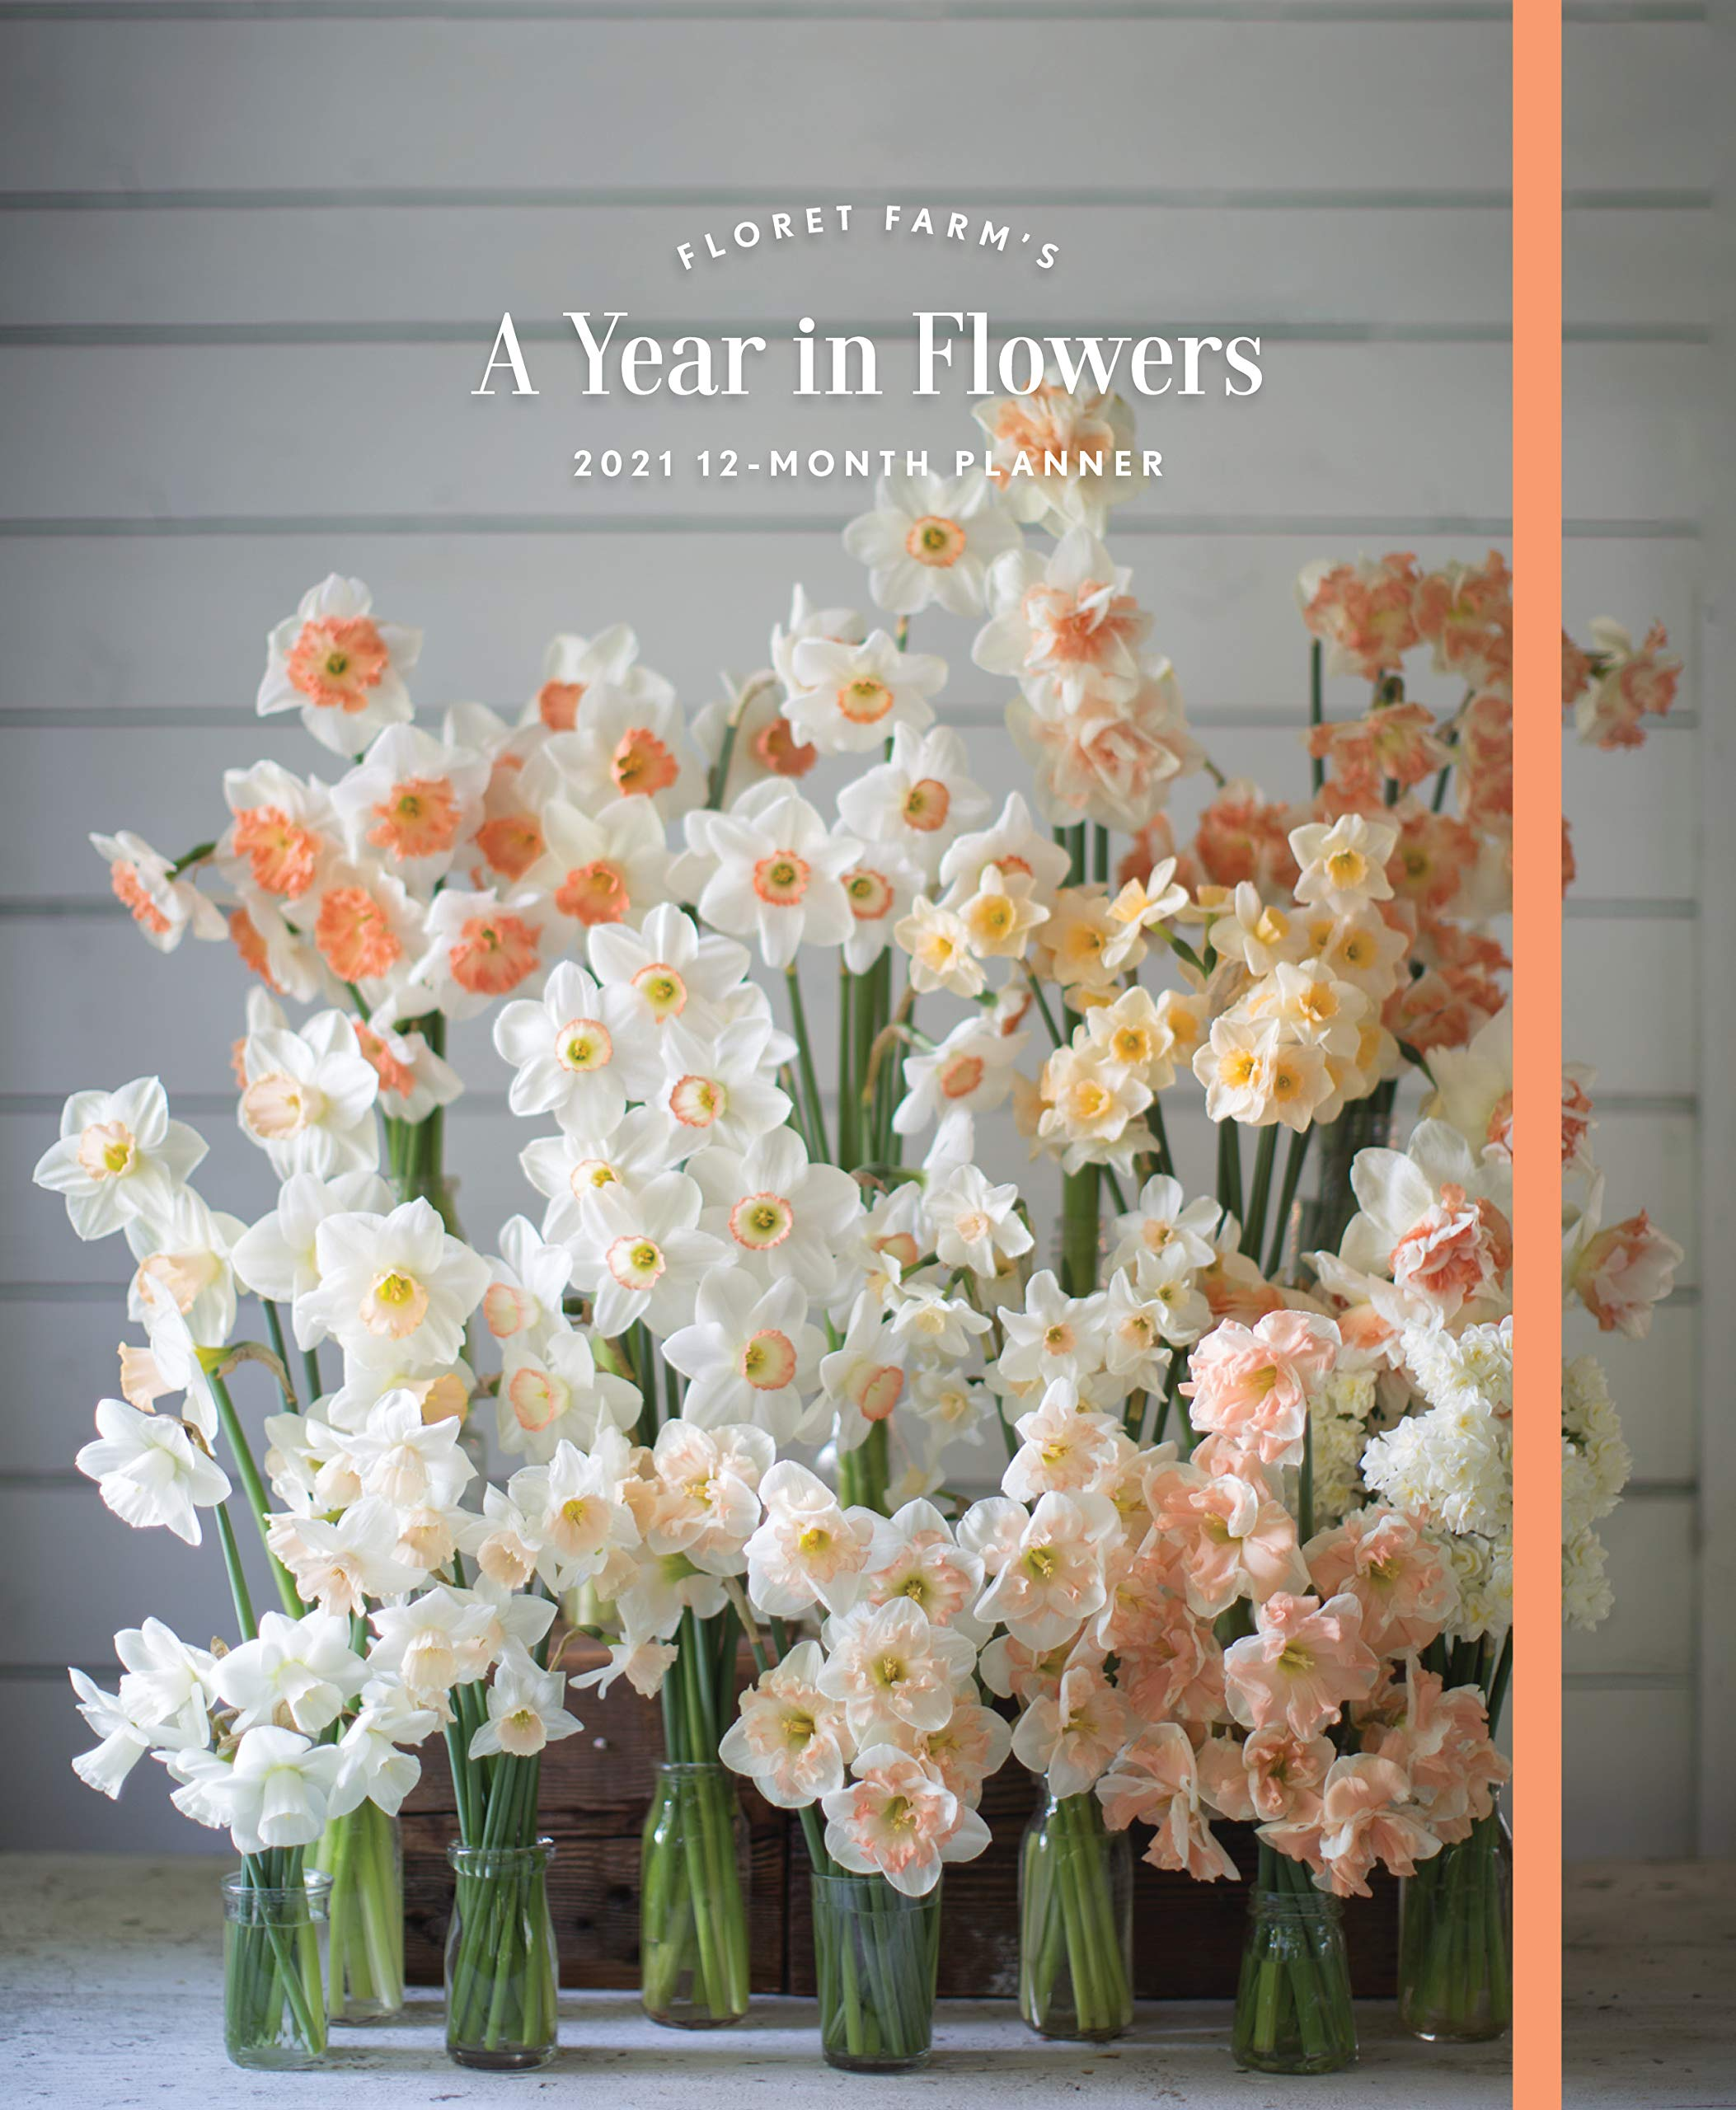 Floret Farm's A Year In Flowers 2021 Planner